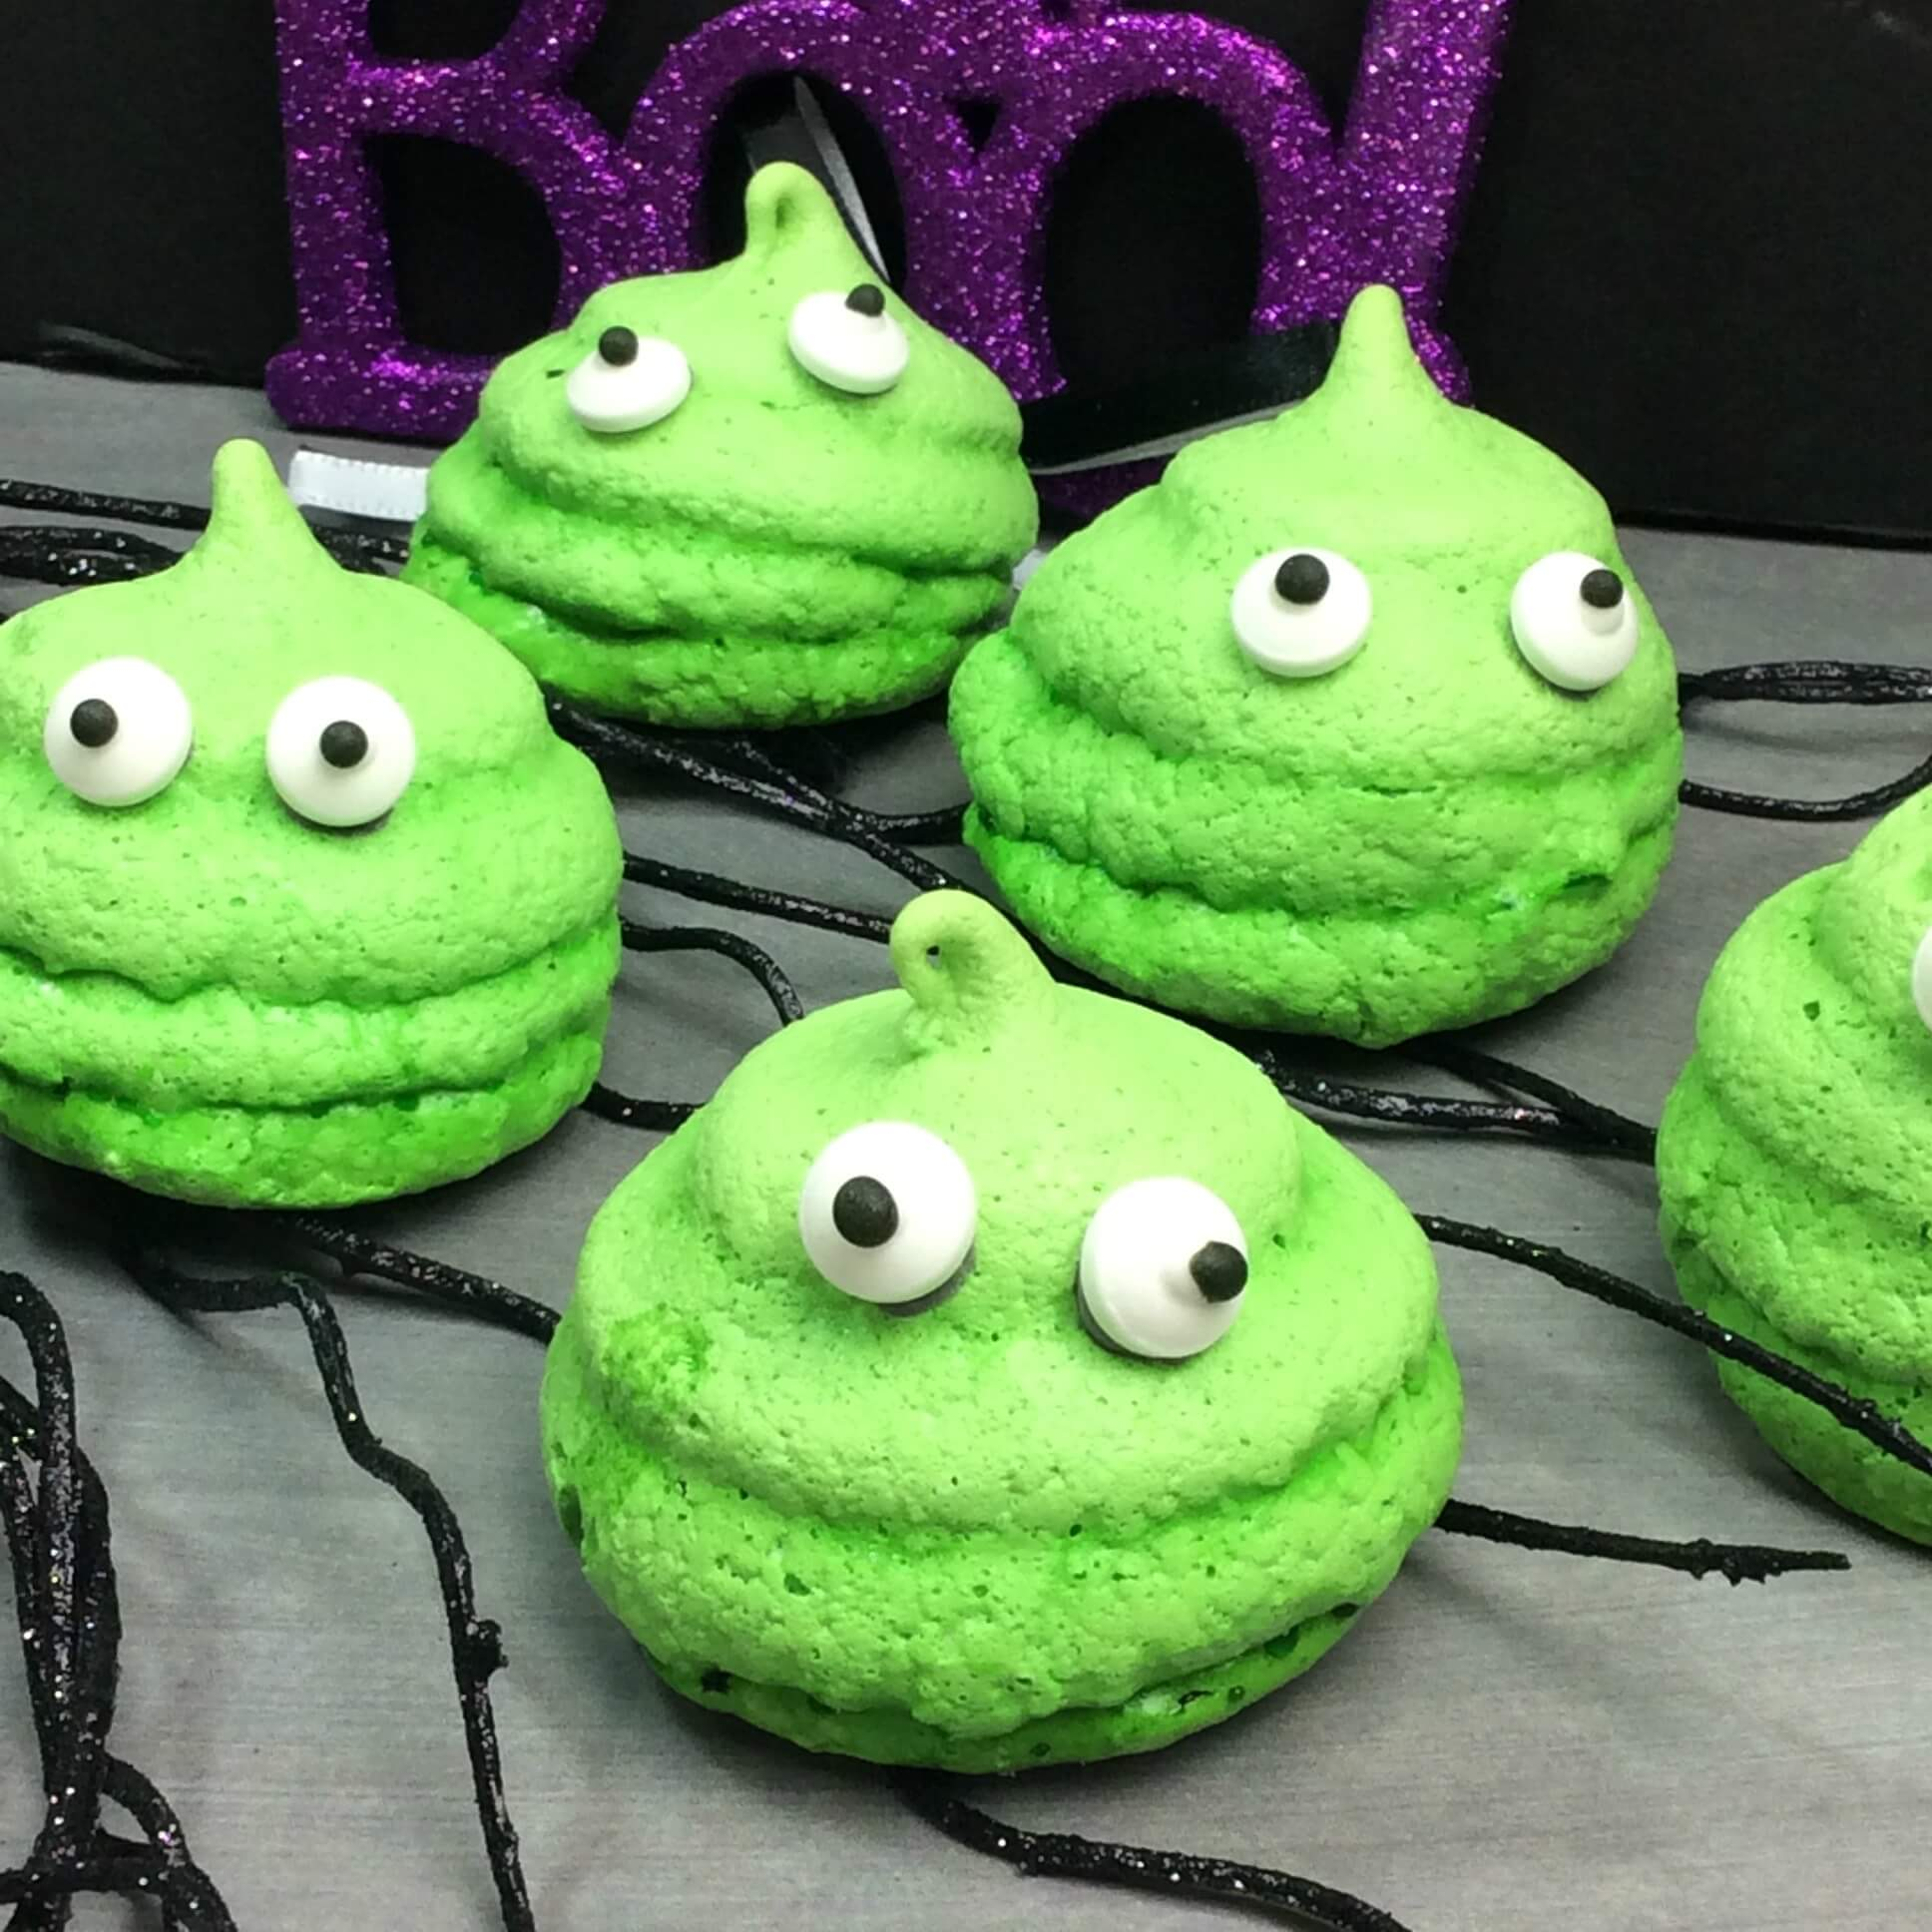 Spooky Slime Cookies - the Slime Recipe You\'re SUPPOSED to Eat!